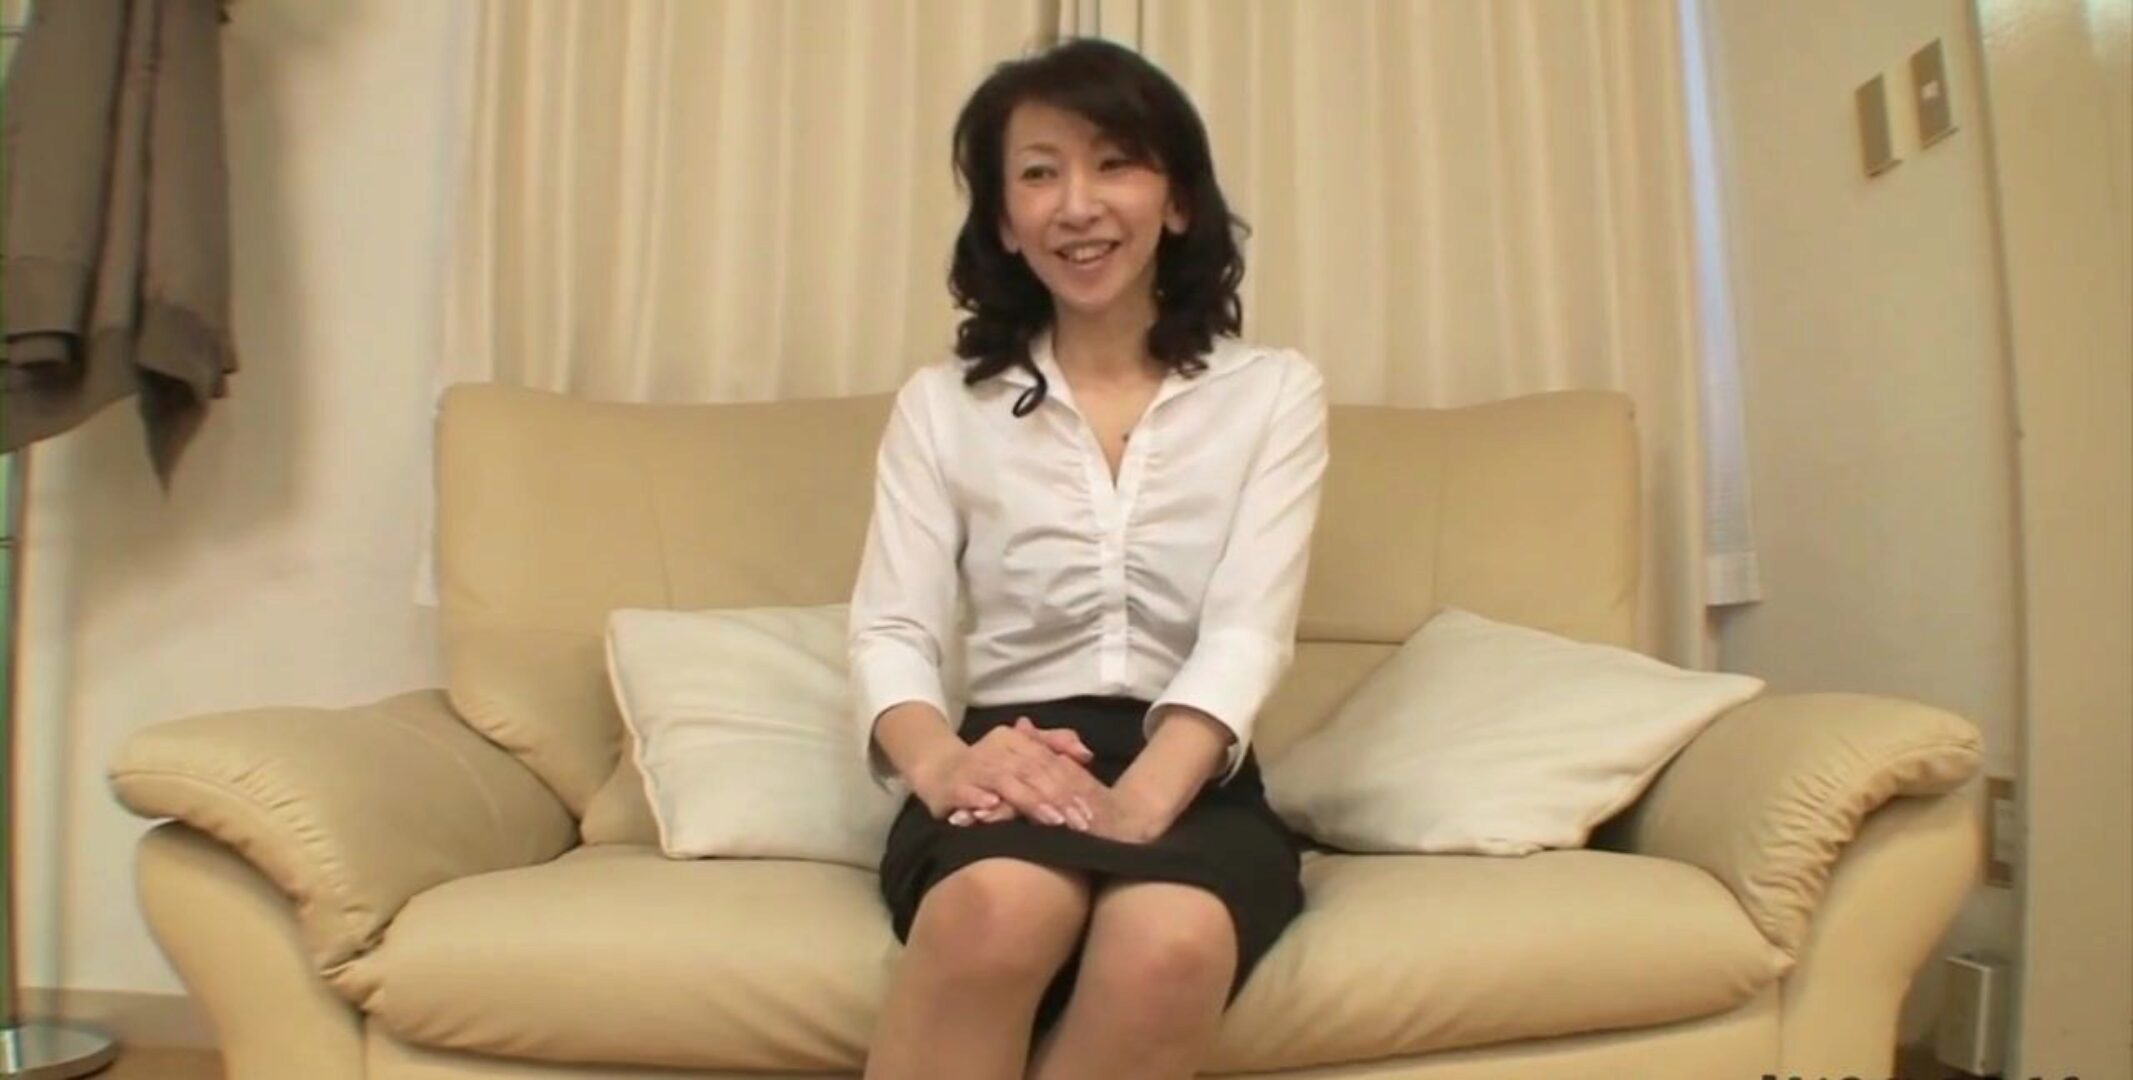 Real Japanese Granny Squirts Hard - Japanlust-com: Porn ea Watch Real Japanese Granny Squirts Hard - Japanlust-com movie scene on xHamster - the ultimate selection of free-for-all Asian Mature HD hard-core pornography tube clips